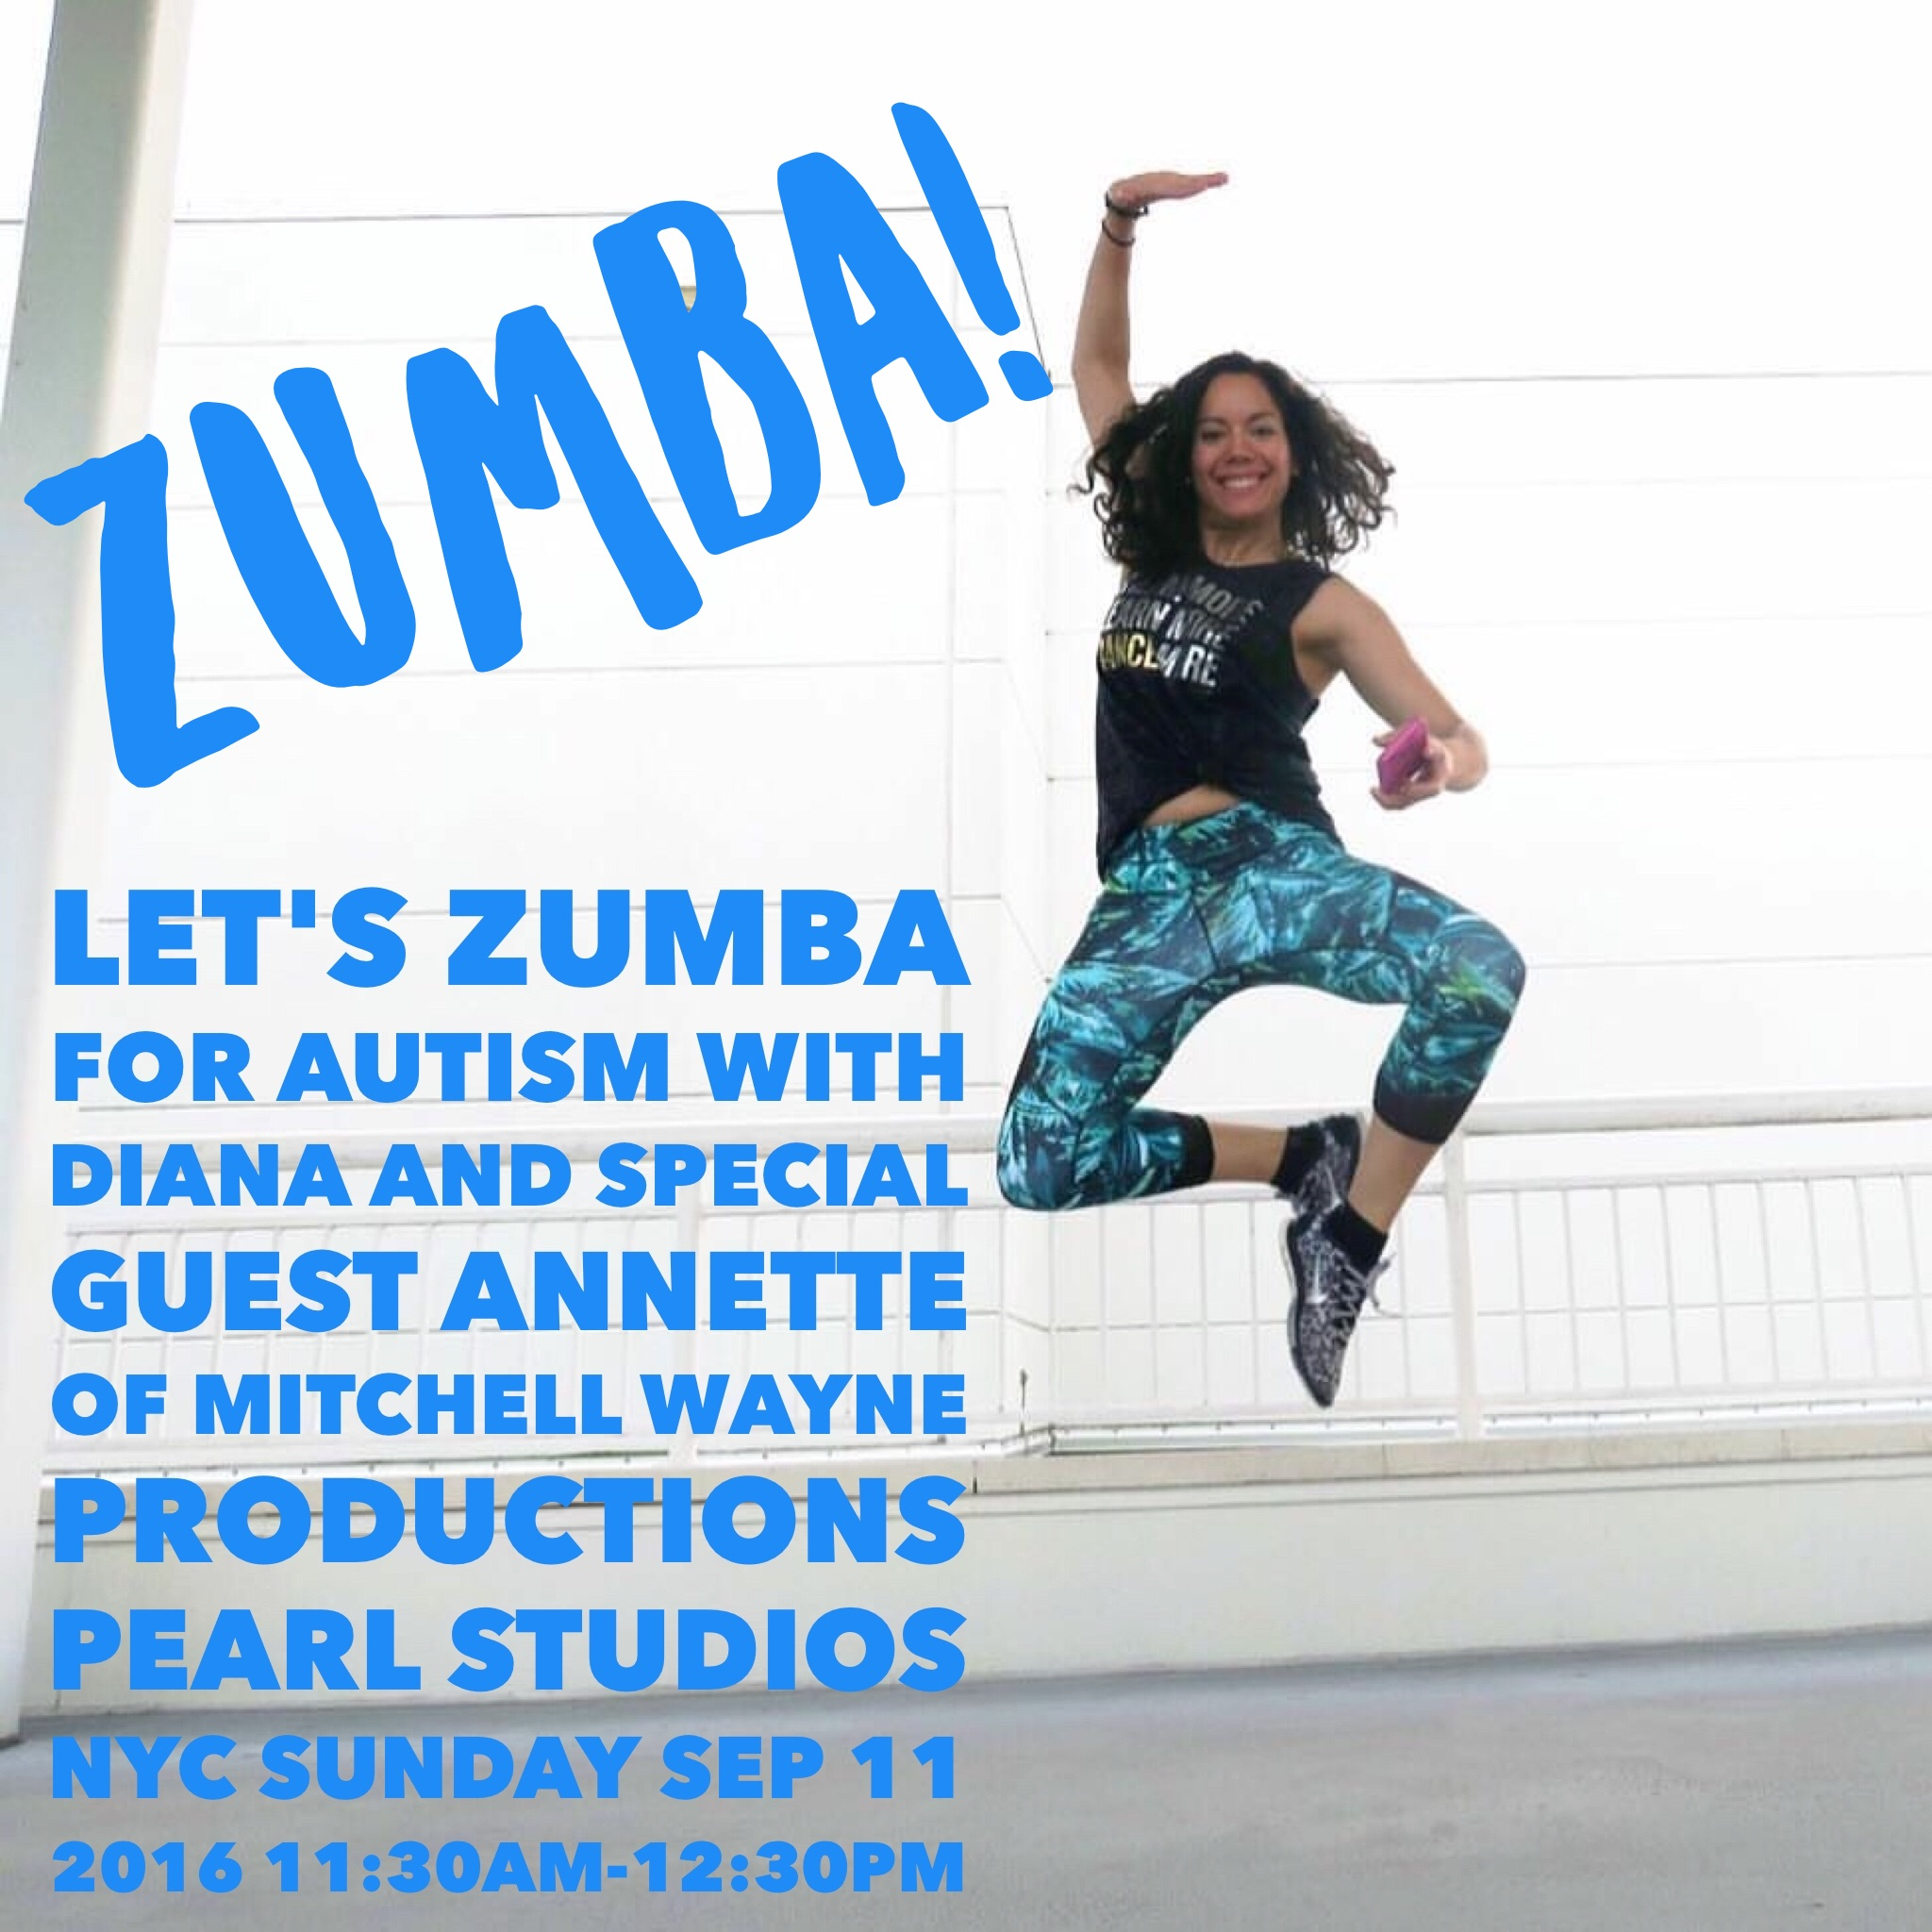 Let's Zumba for Autism (Sunday 9.11.16)